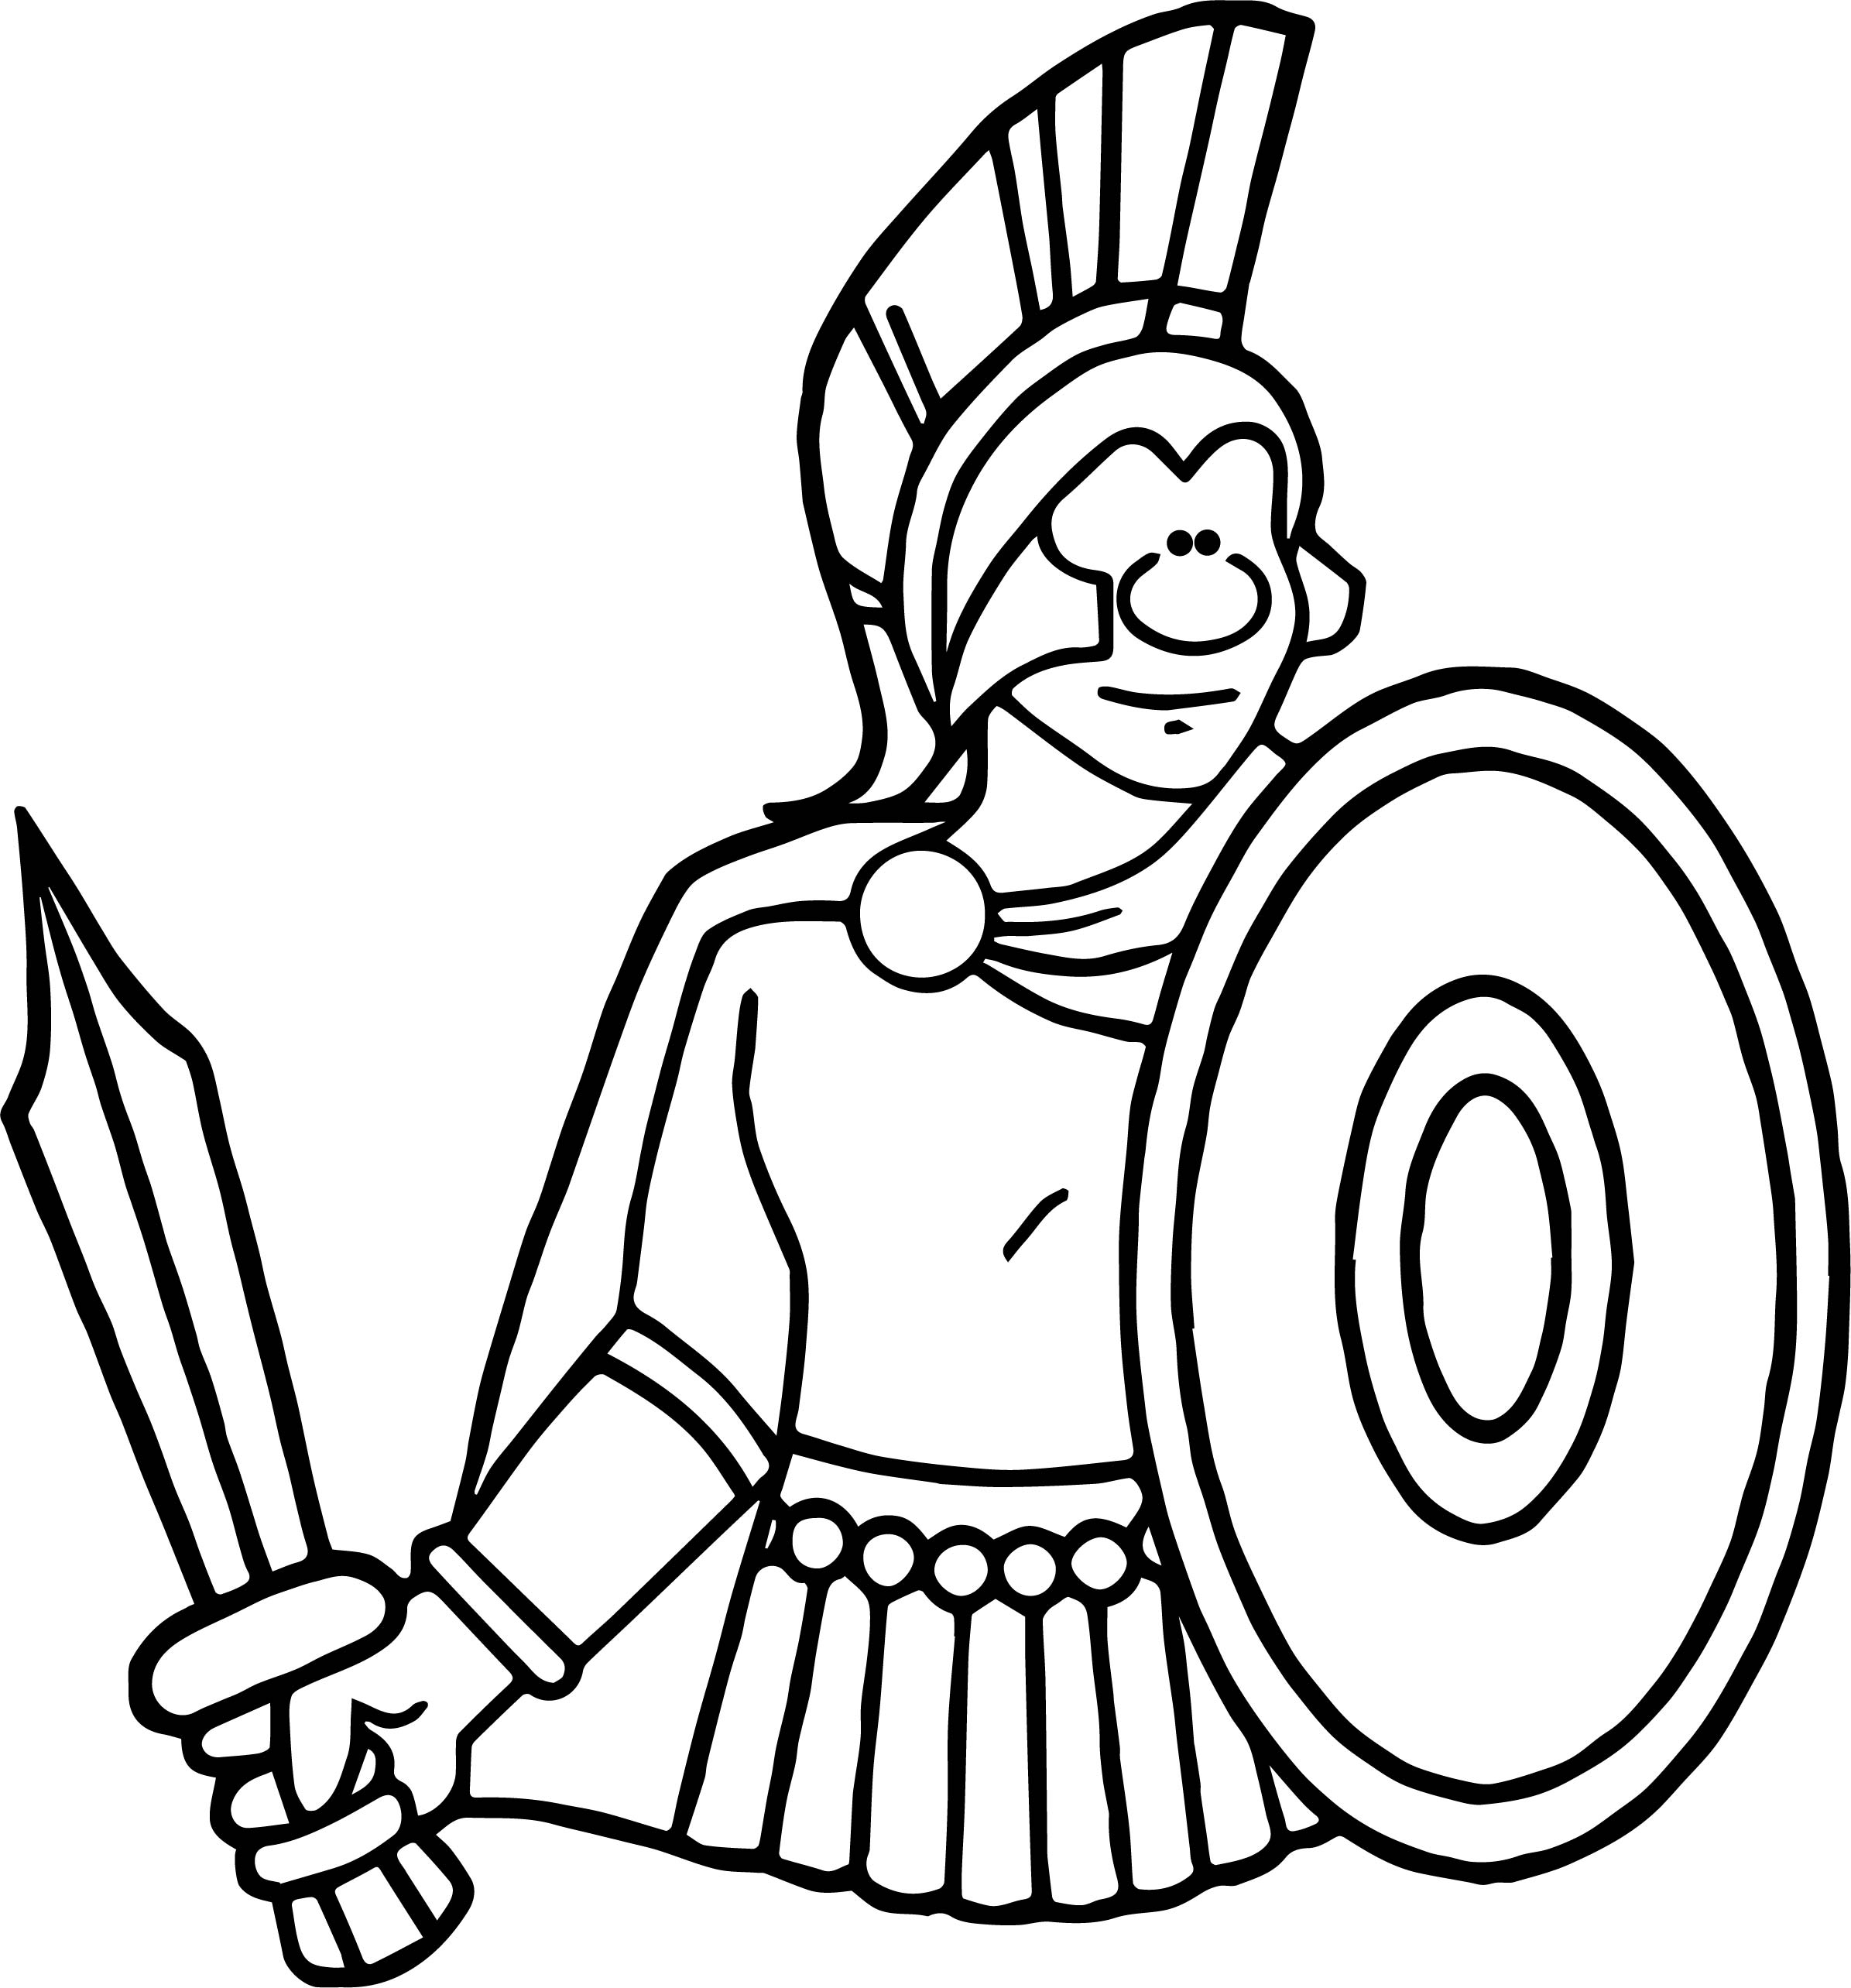 spartan rome ancient coloring page